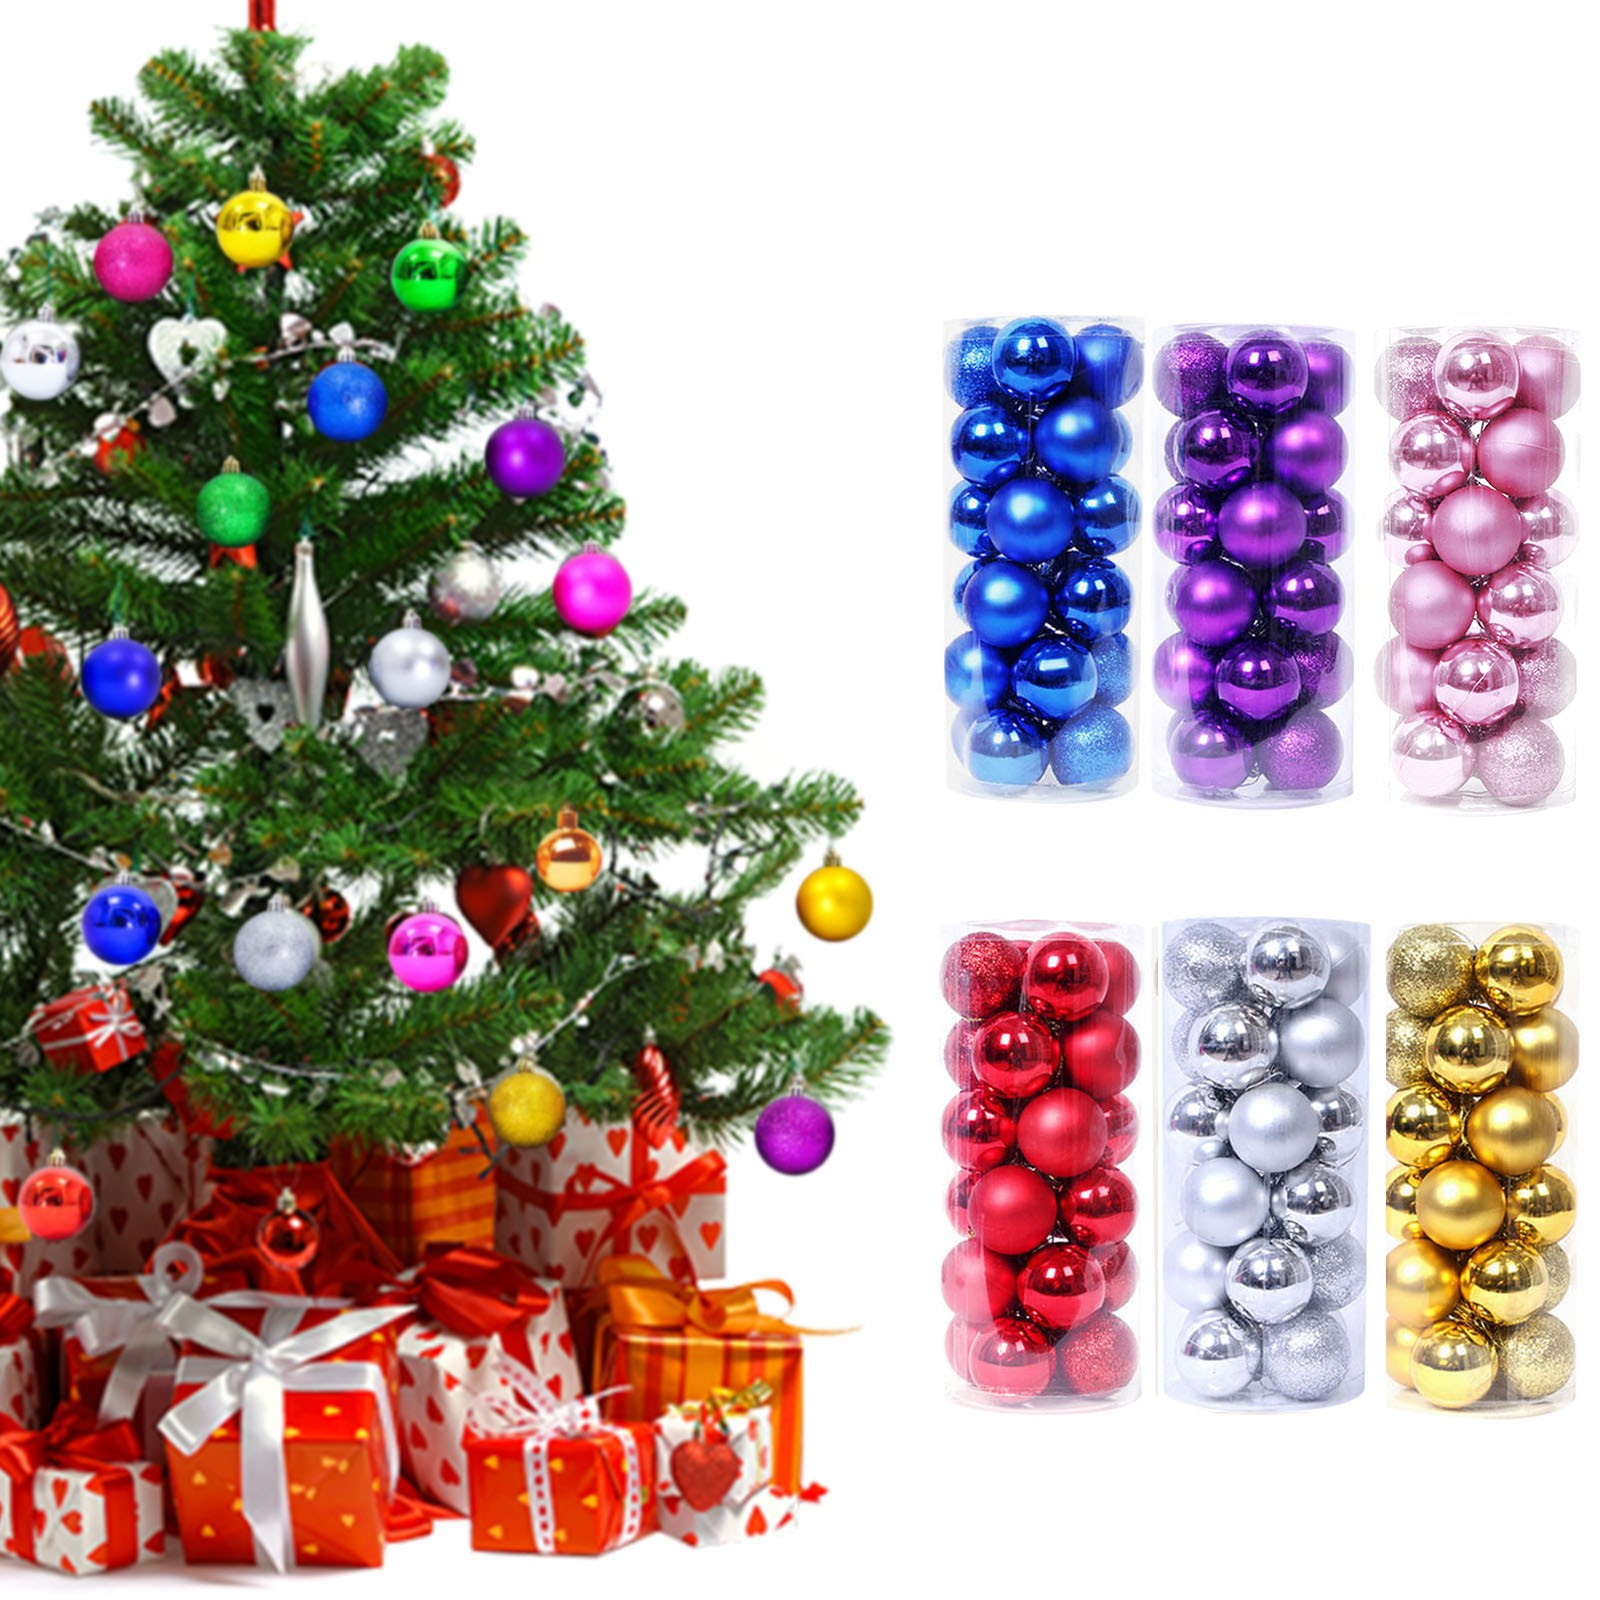 New 24 Piece Christmas Tree Ball Flash Bauble Hanging Family Party Decoration Holiday Christmas Decoration Home Decoration